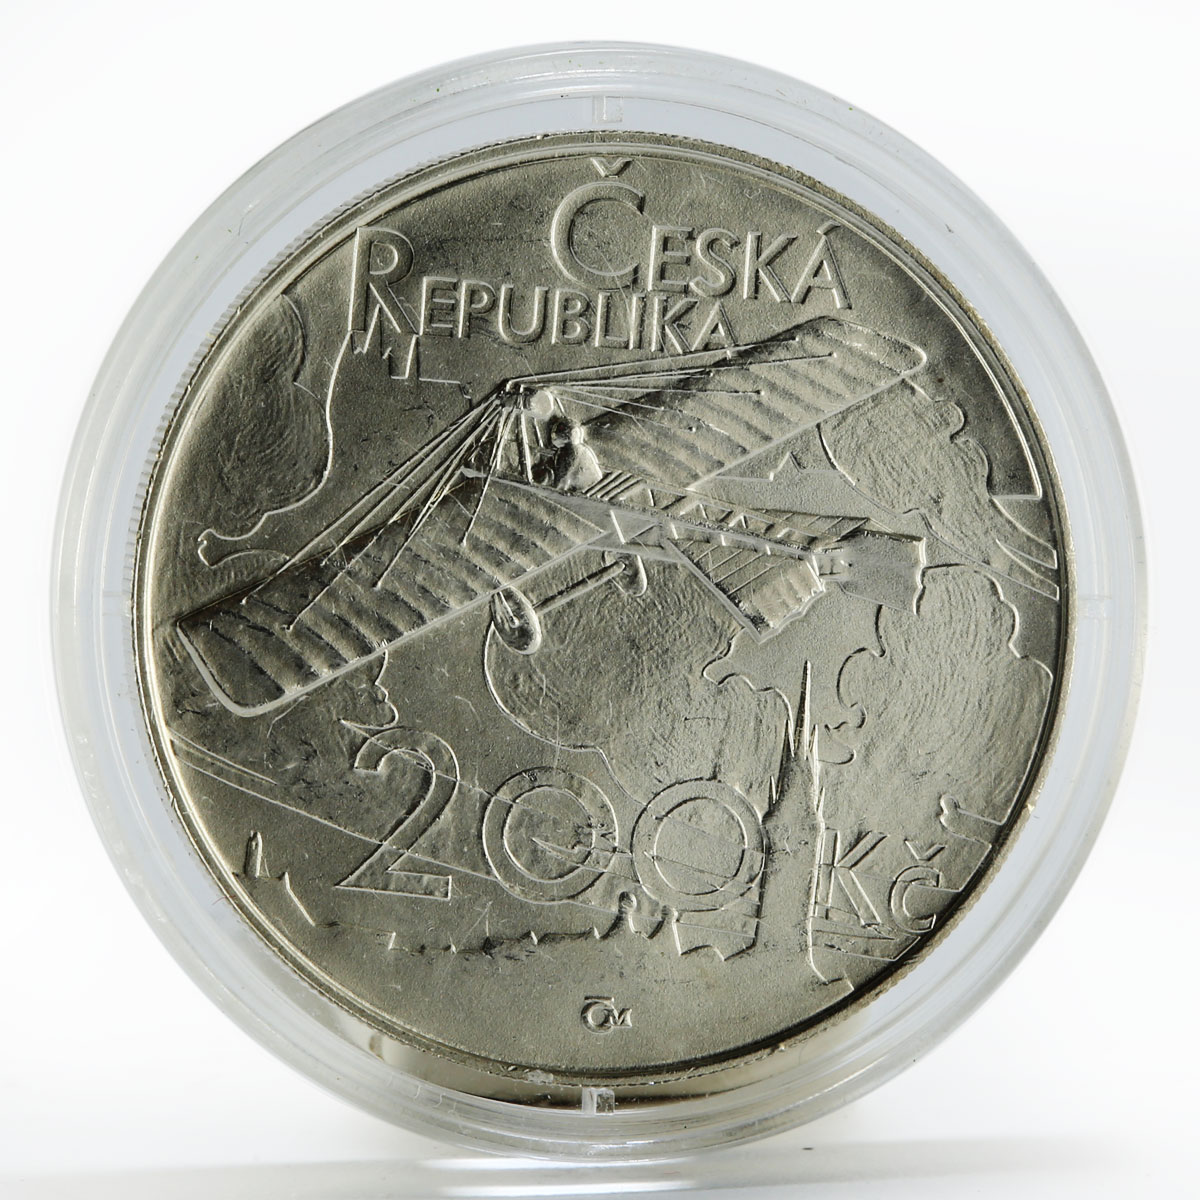 Czech Republic 200 korun First Long-distance Flight Jan Kaspar silver coin 2011